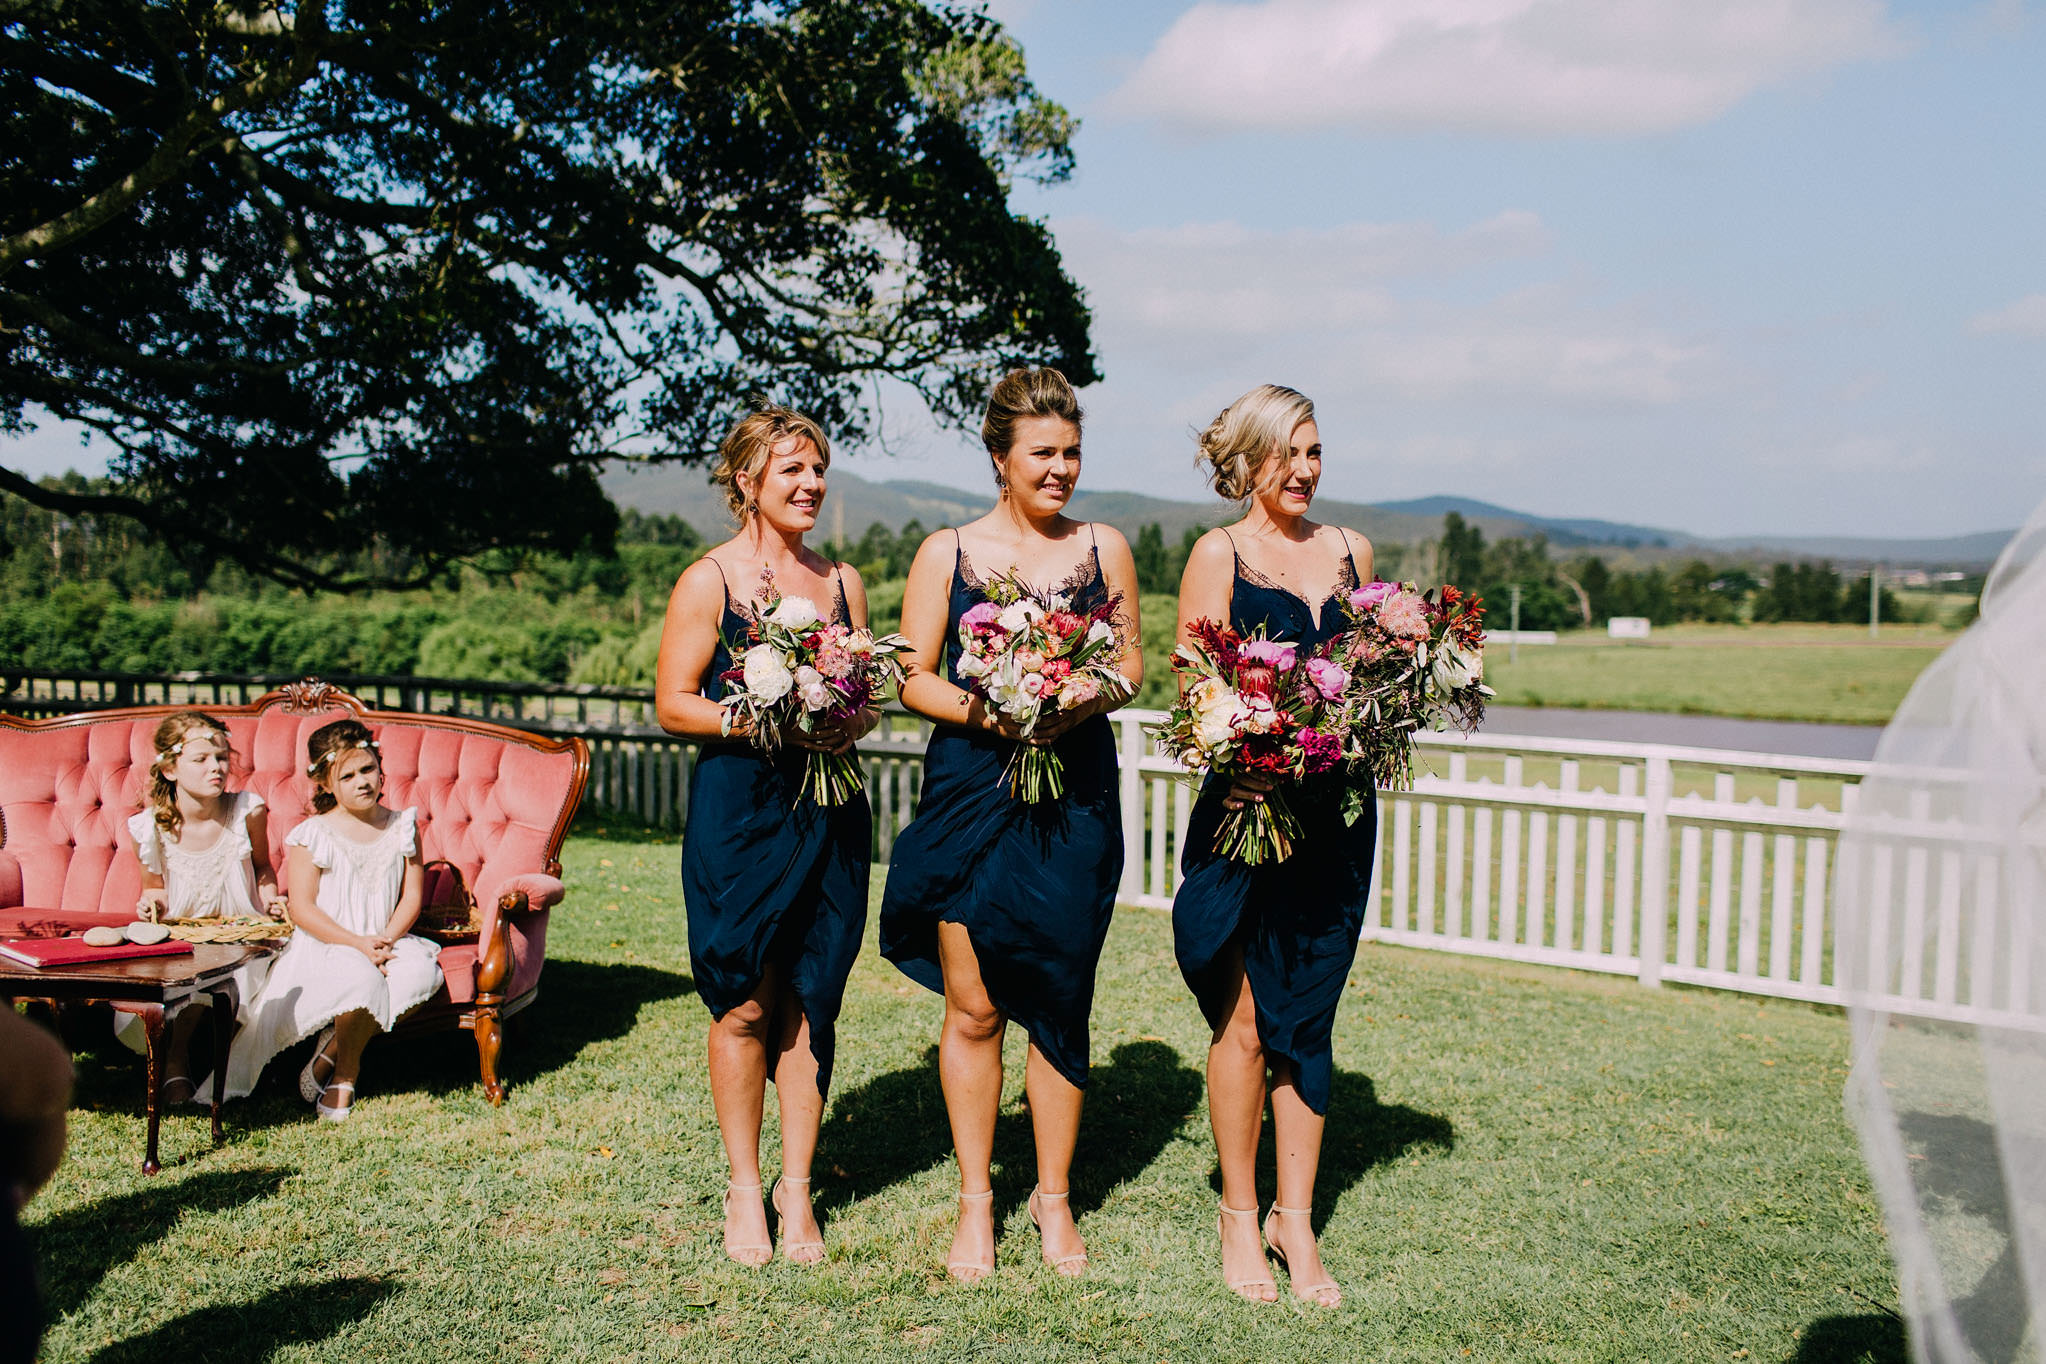 TocalHomestead_WeddingPhotography_LaurenAnnePhotography-1051.jpg